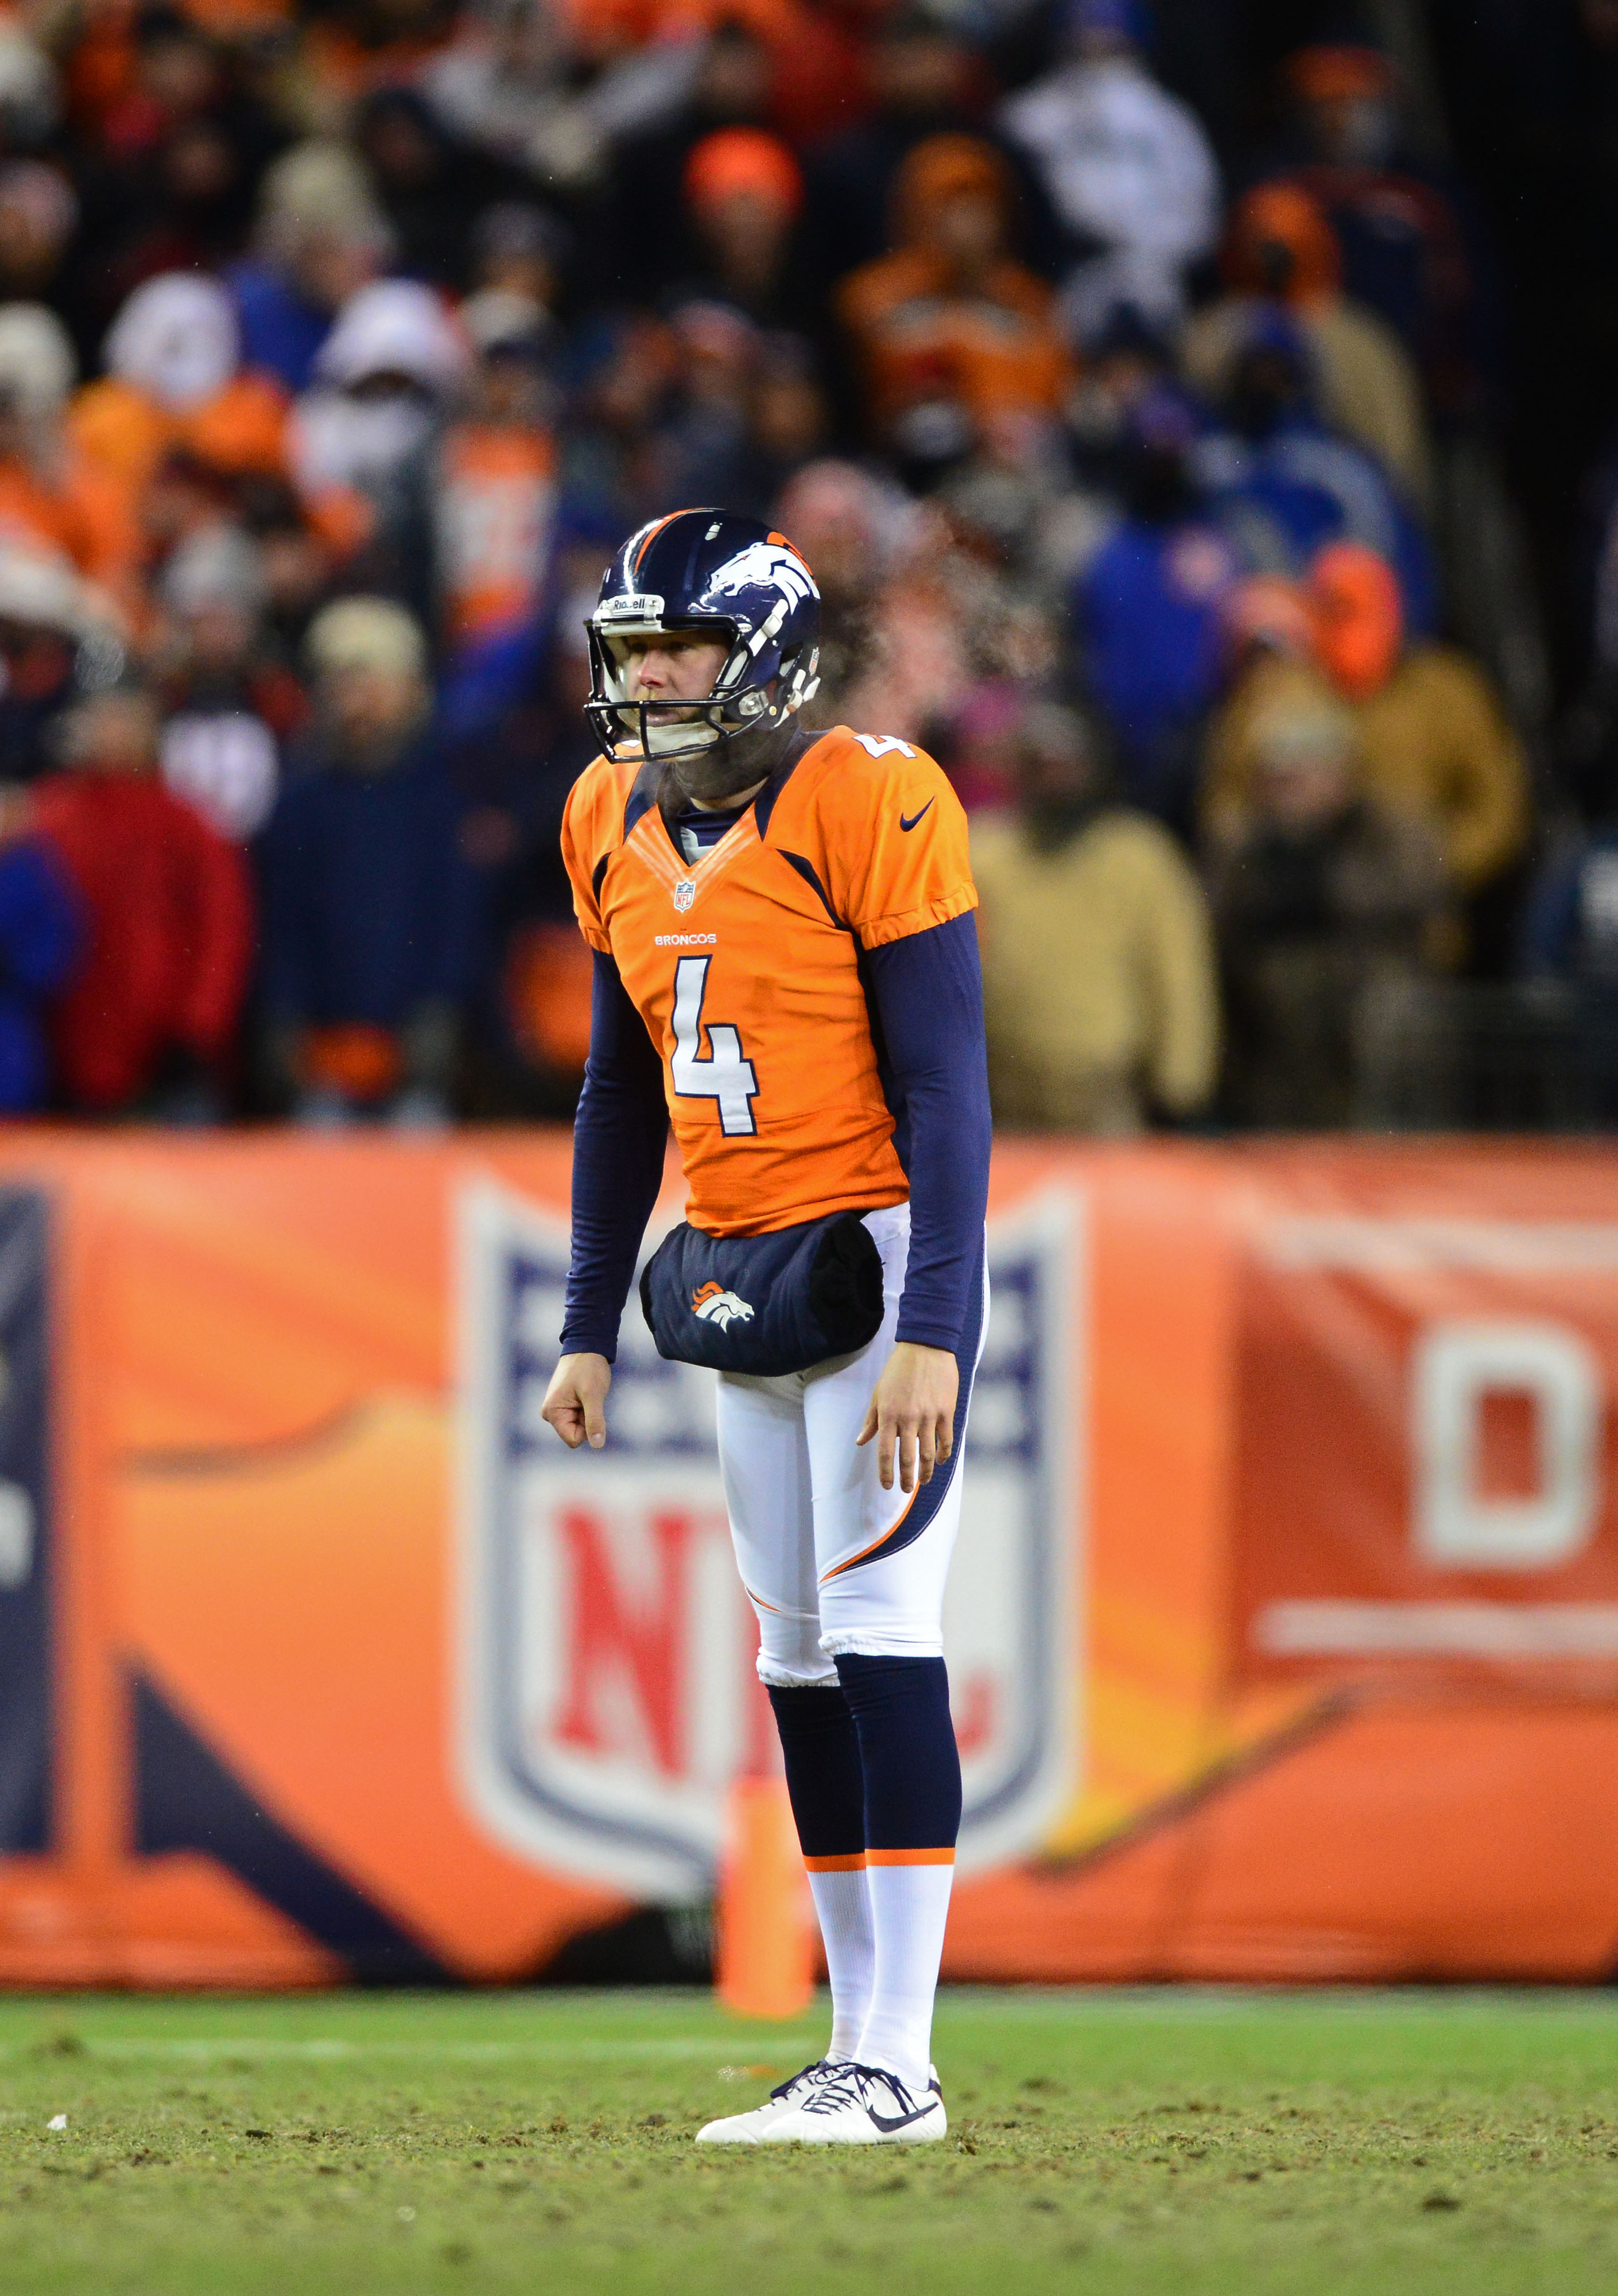 Britton Colquitt contract: Broncos reportedly want to extend punter's deal